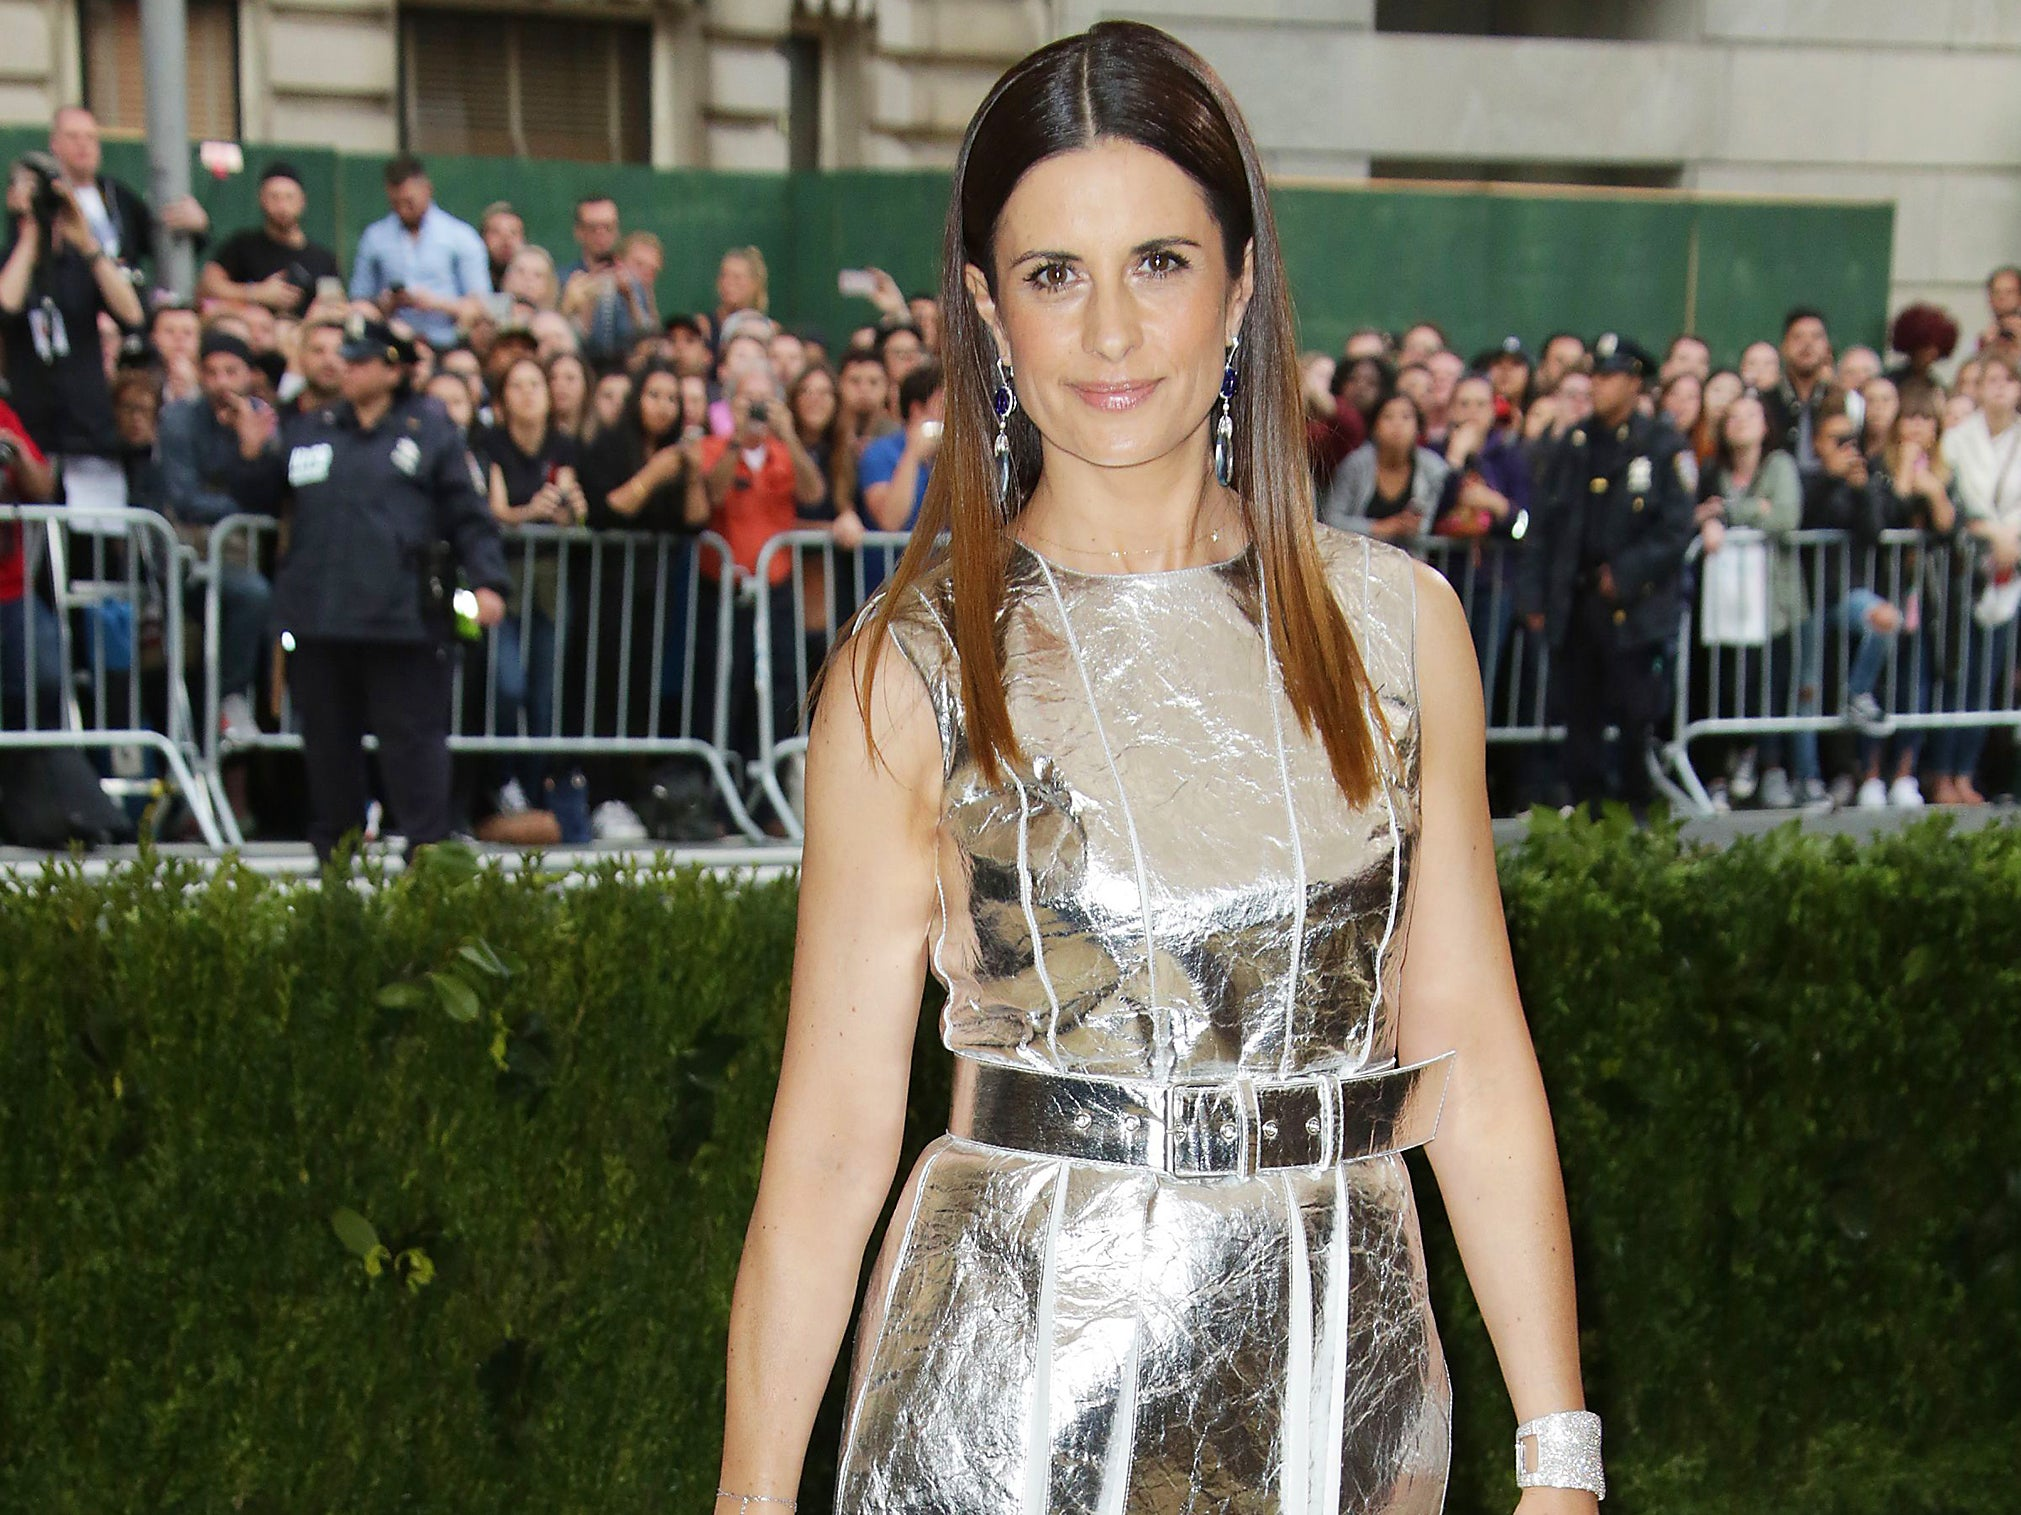 Coronavirus is the fashion industry's wake-up call to change, eco-fashion campaigner Livia Firth warns